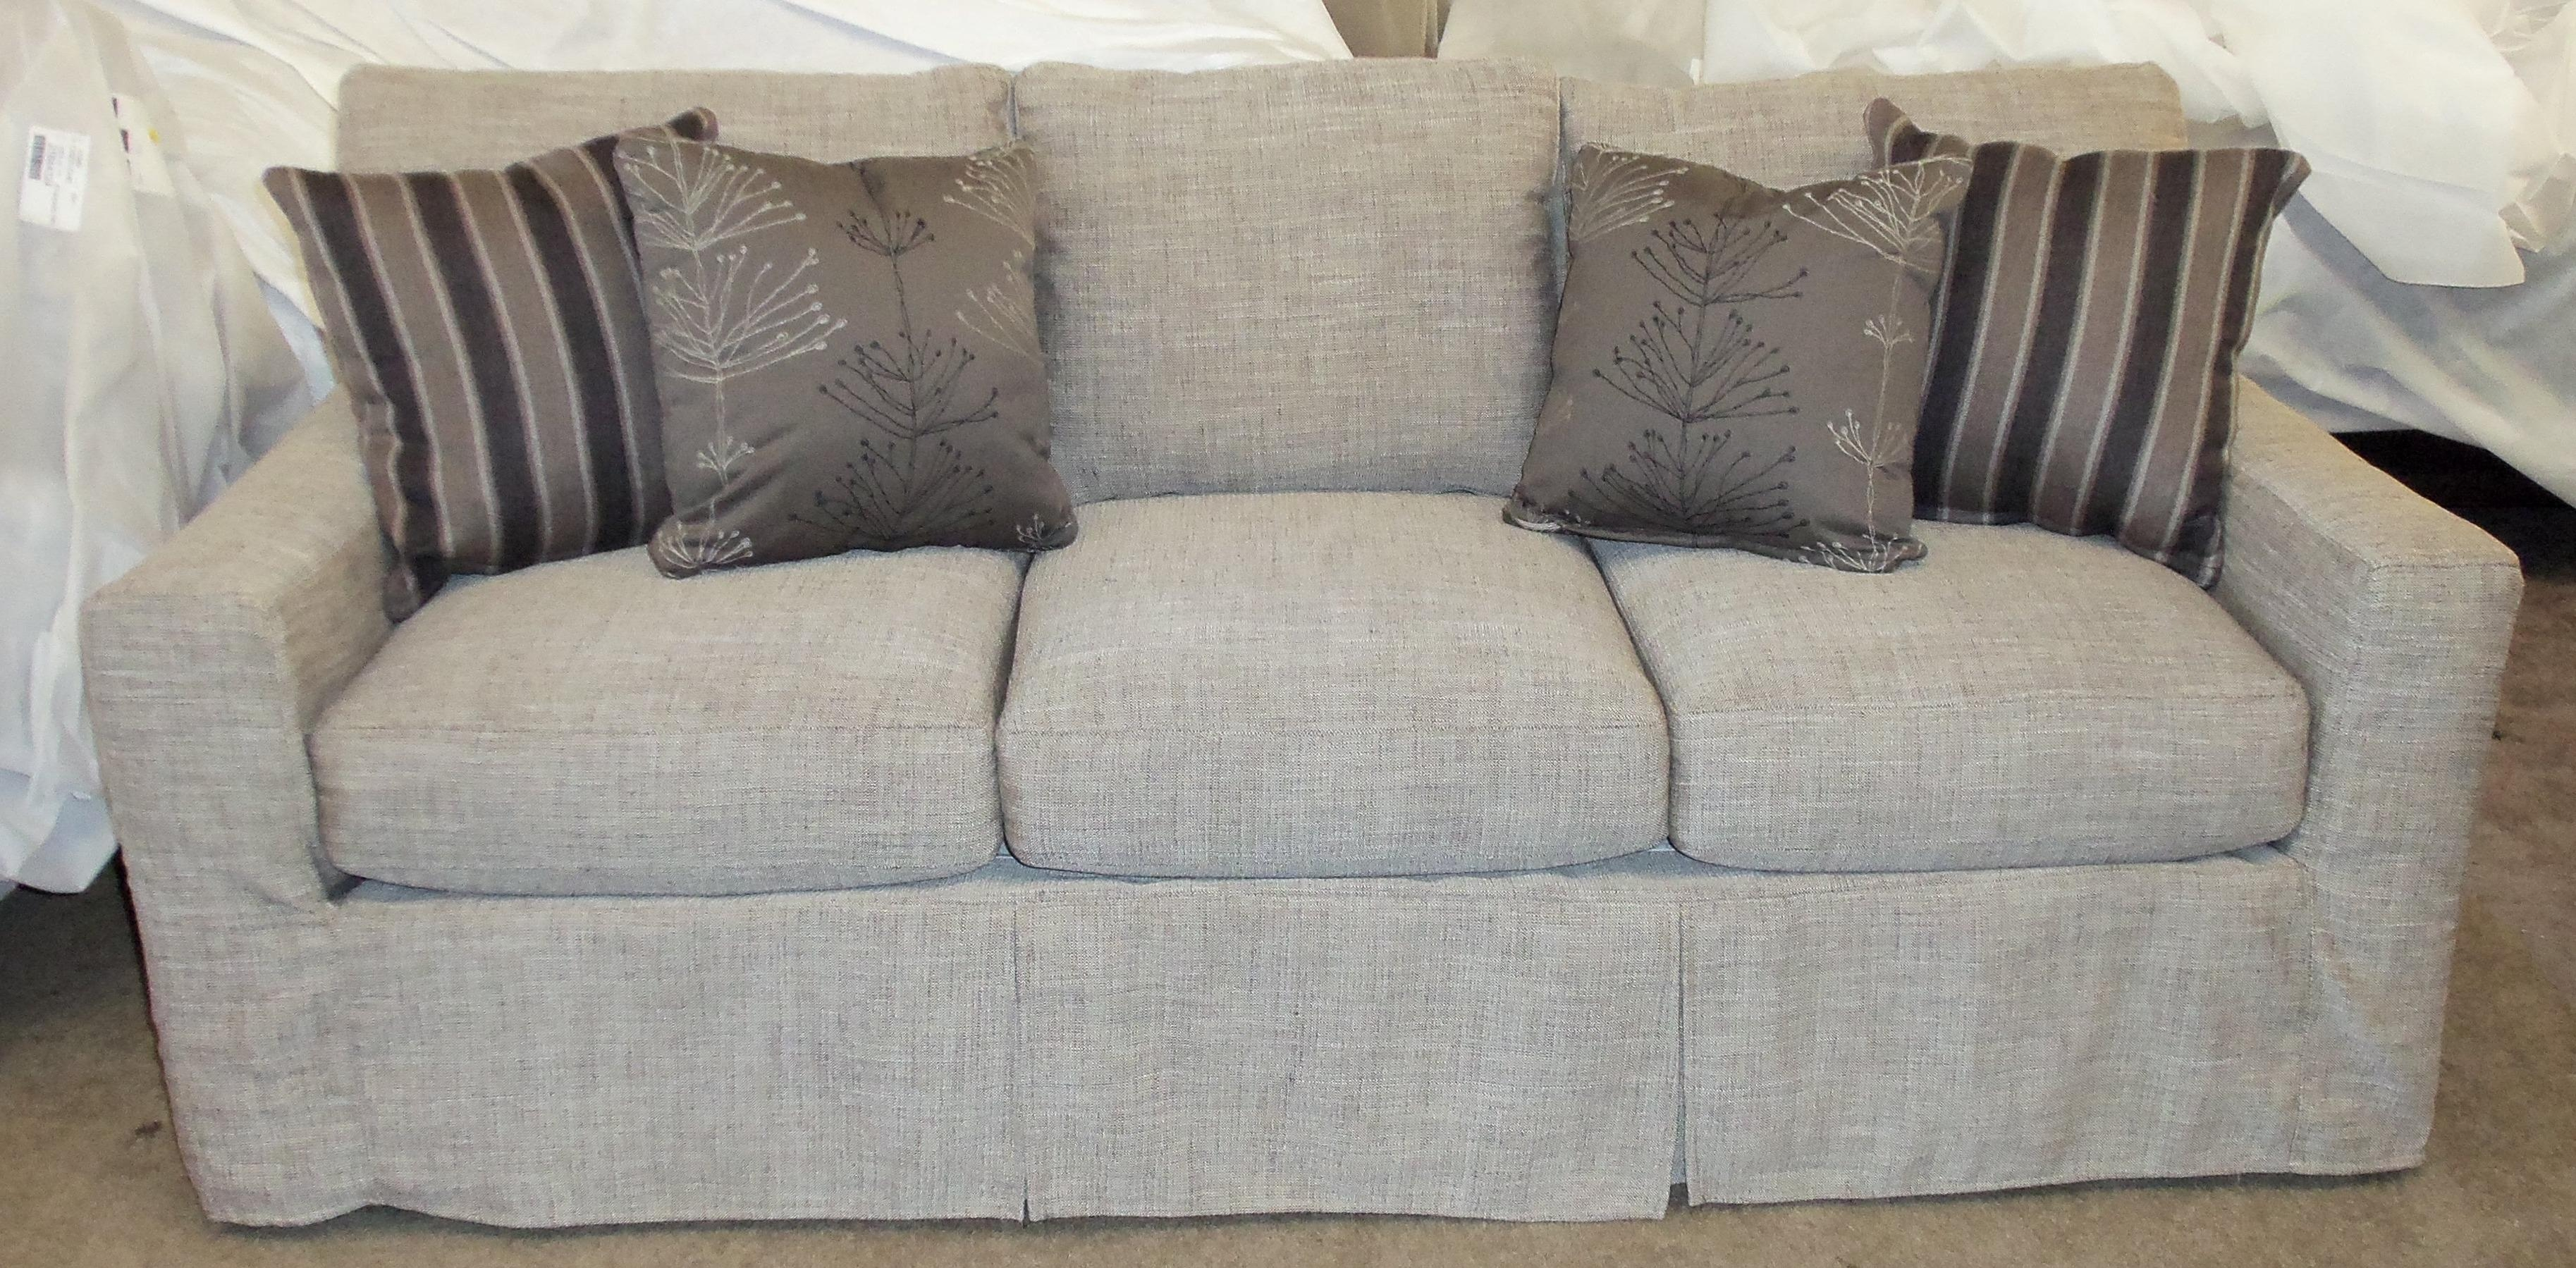 Furniture: Sofa Covers Walmart | Walmart Couch Covers | Slip With Slipcovers For Sofas And Chairs (View 15 of 20)